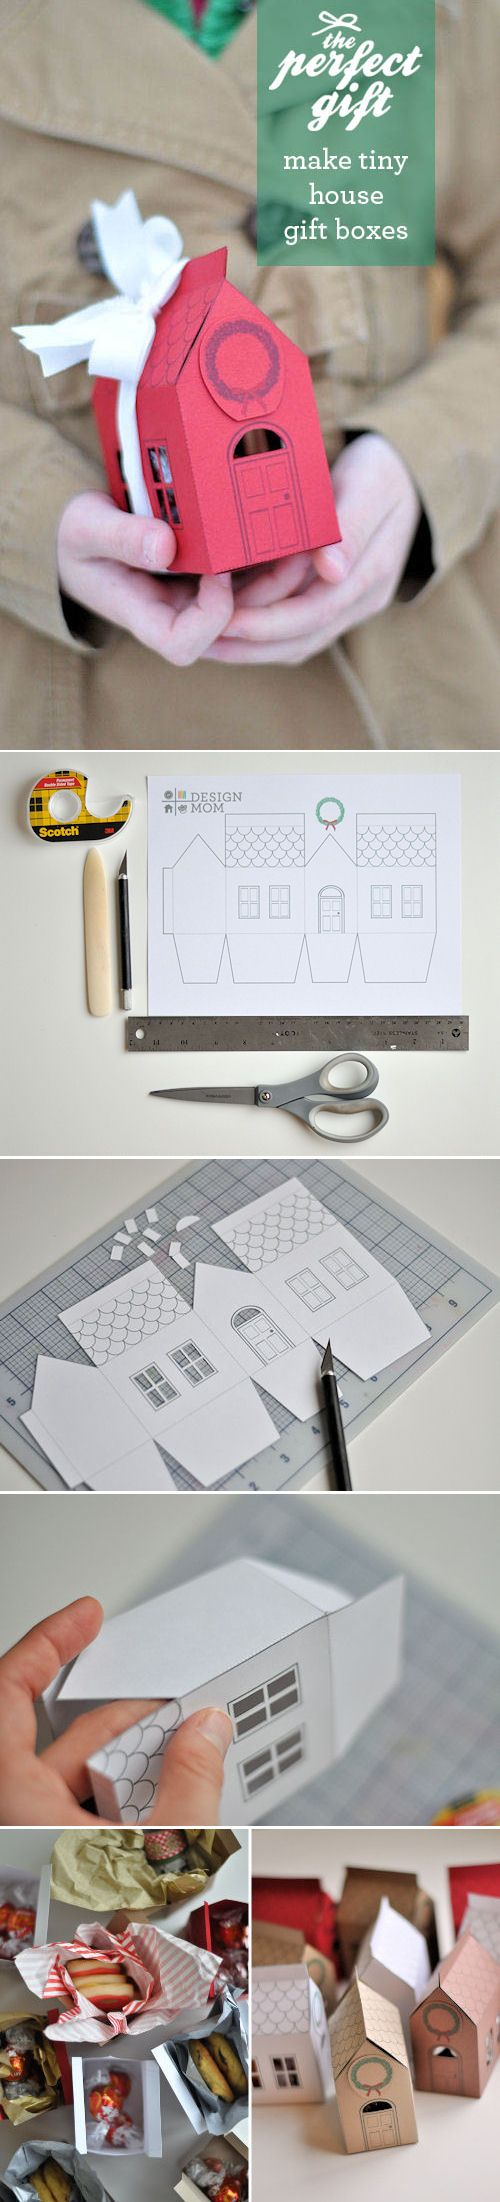 House Gift Box - free printable template